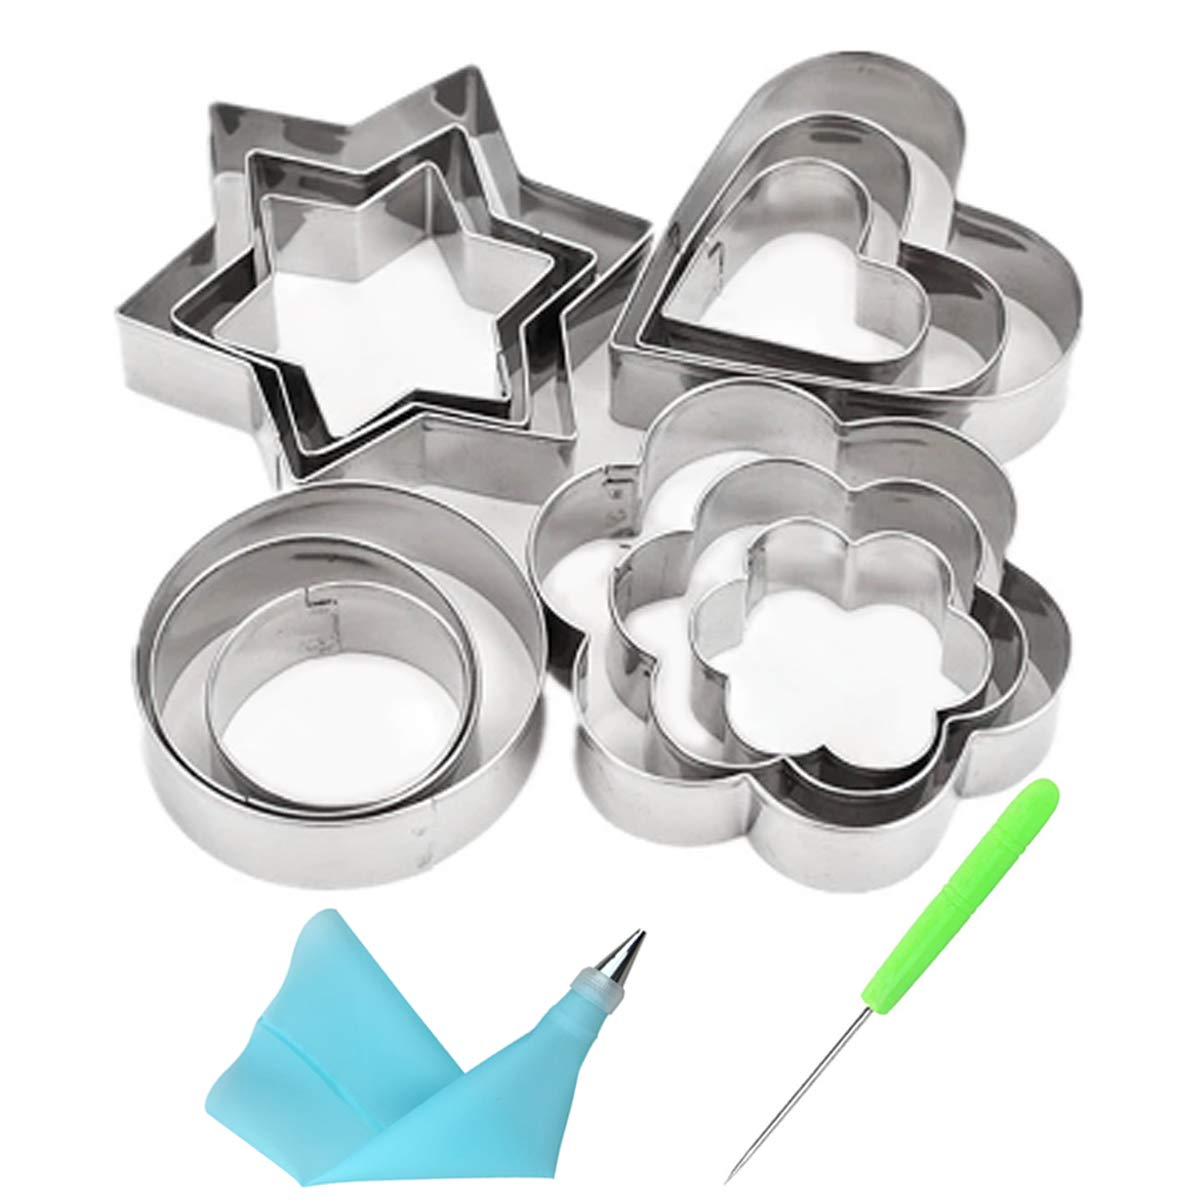 Cofe-BY Stainless Steel Cookie Cutters set 16pcs, Mini Cookie Press Molds Round,Flower,Heart,Star Shapes Cake Fondant Biscuit Fruit Cutters with 1 Coupler +1 Icing Nozzle + 1 Pastry Bag + 1 Cookie Needle(Random Color) CT003-12S